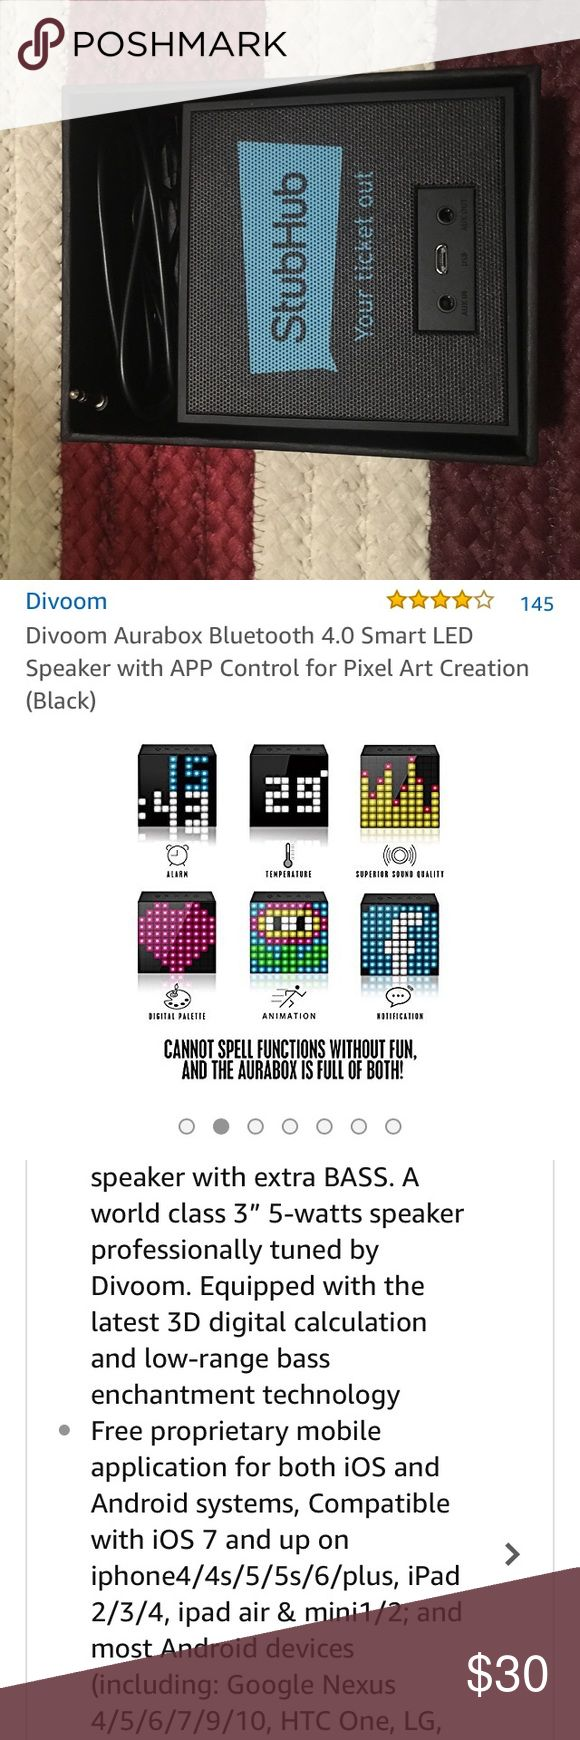 """Divoom Aurabox Bluetooth Smart LED Speaker w/ APP Divoom Aurabox Bluetooth 4.0 Smart LED Speaker with APP Control for Pixel Art Creation   New and unused!   Great gift 🎁 for 🎶 music and concert fans!   Mine says """"Stubhub"""" on it, as shown in the picture. divoom Other"""